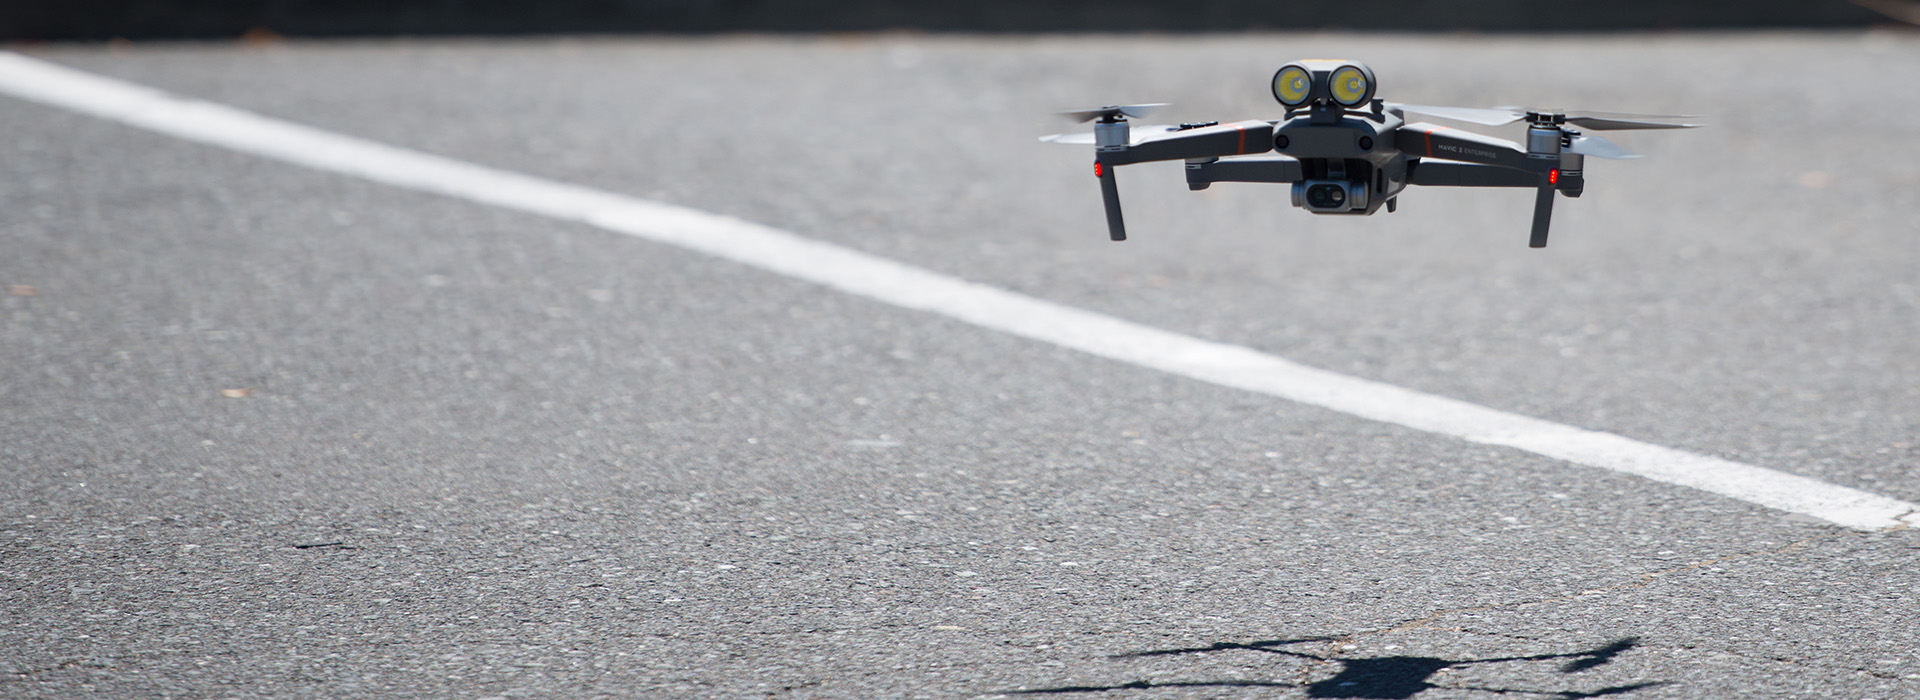 Police drone law enforcement technology